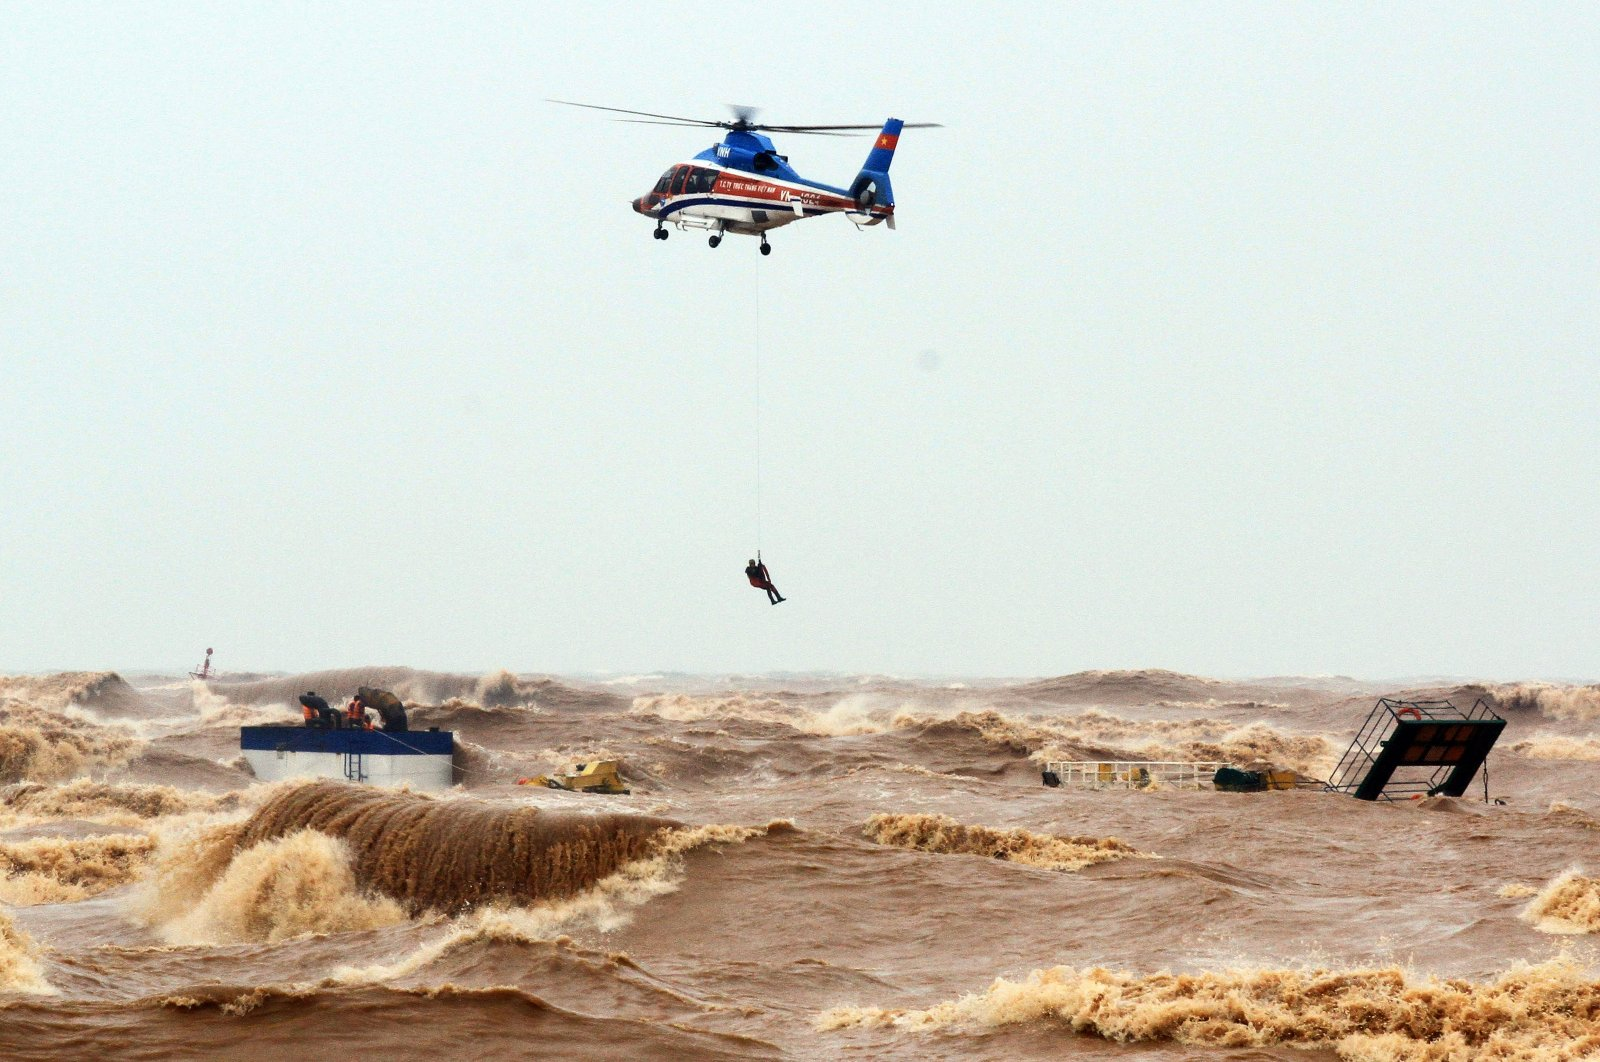 A Thai Defense Ministry helicopter rescue stranded crew members at the sea, in Quang Tri province, Vietnam, Oct. 11, 2020. (EPA-EFE Photo)